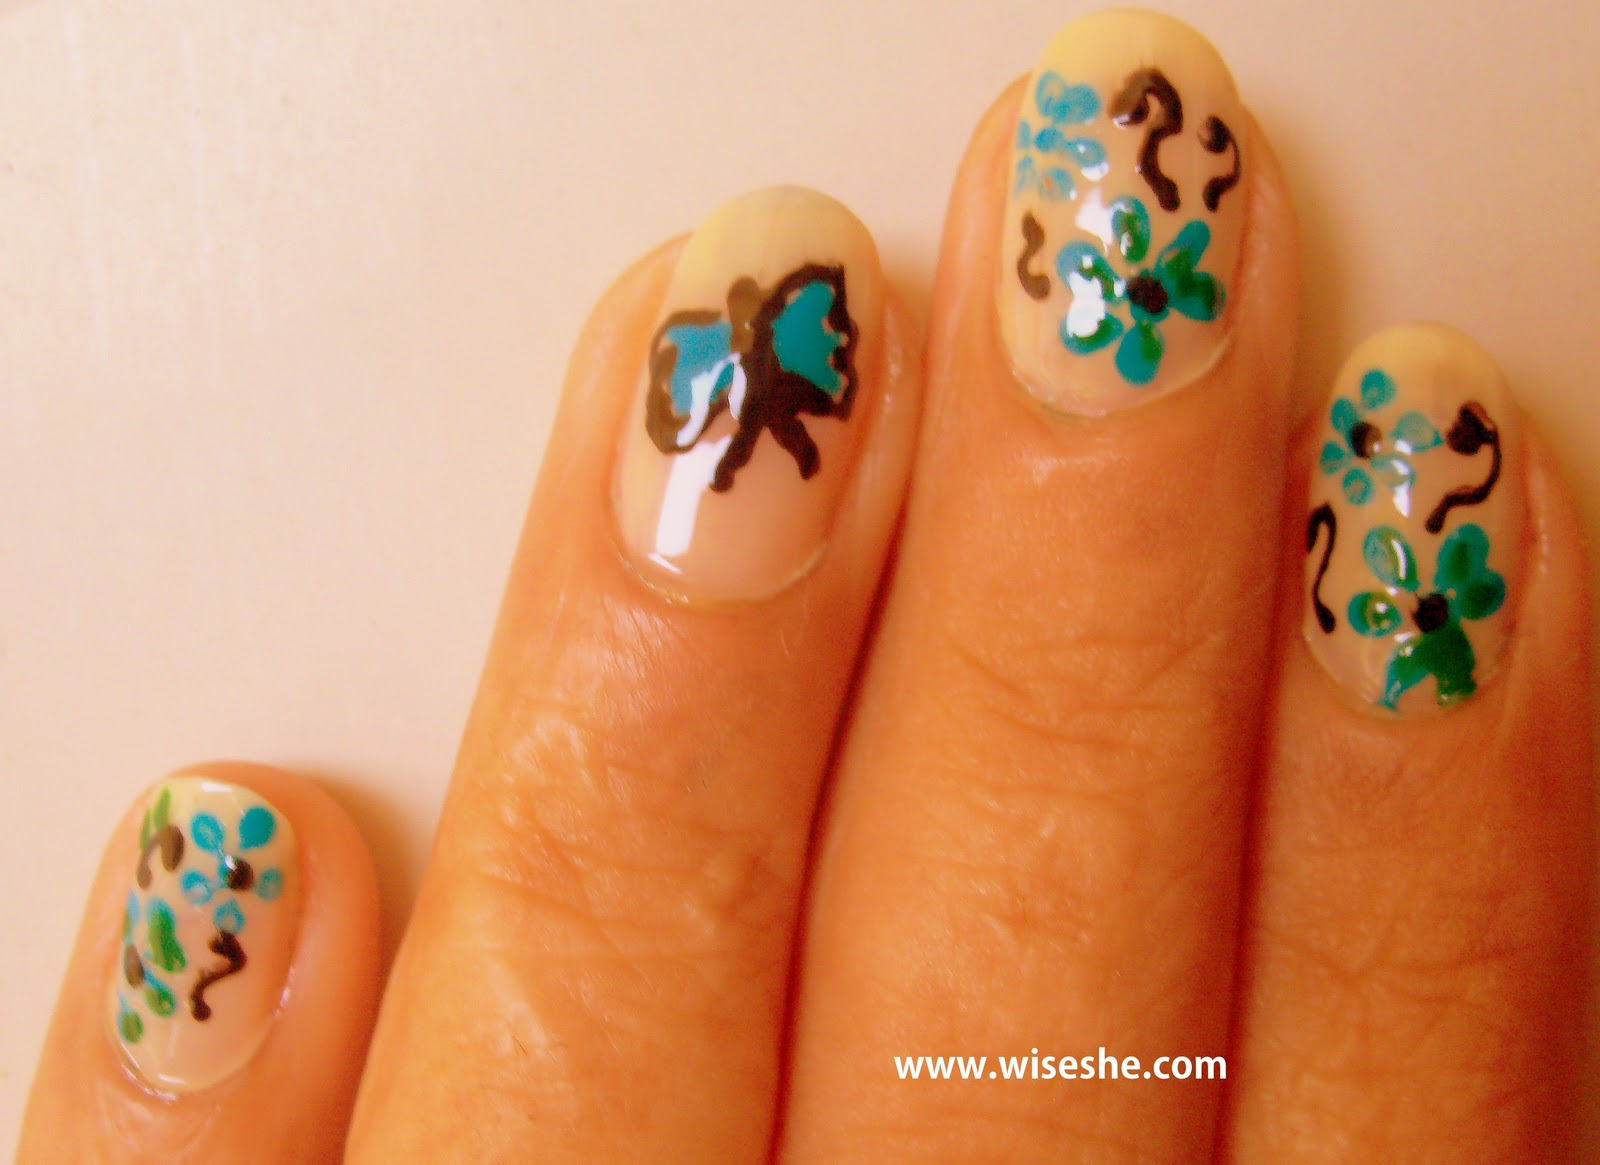 Nail art ideas - Butterfly nail art tutorial with step by step ...